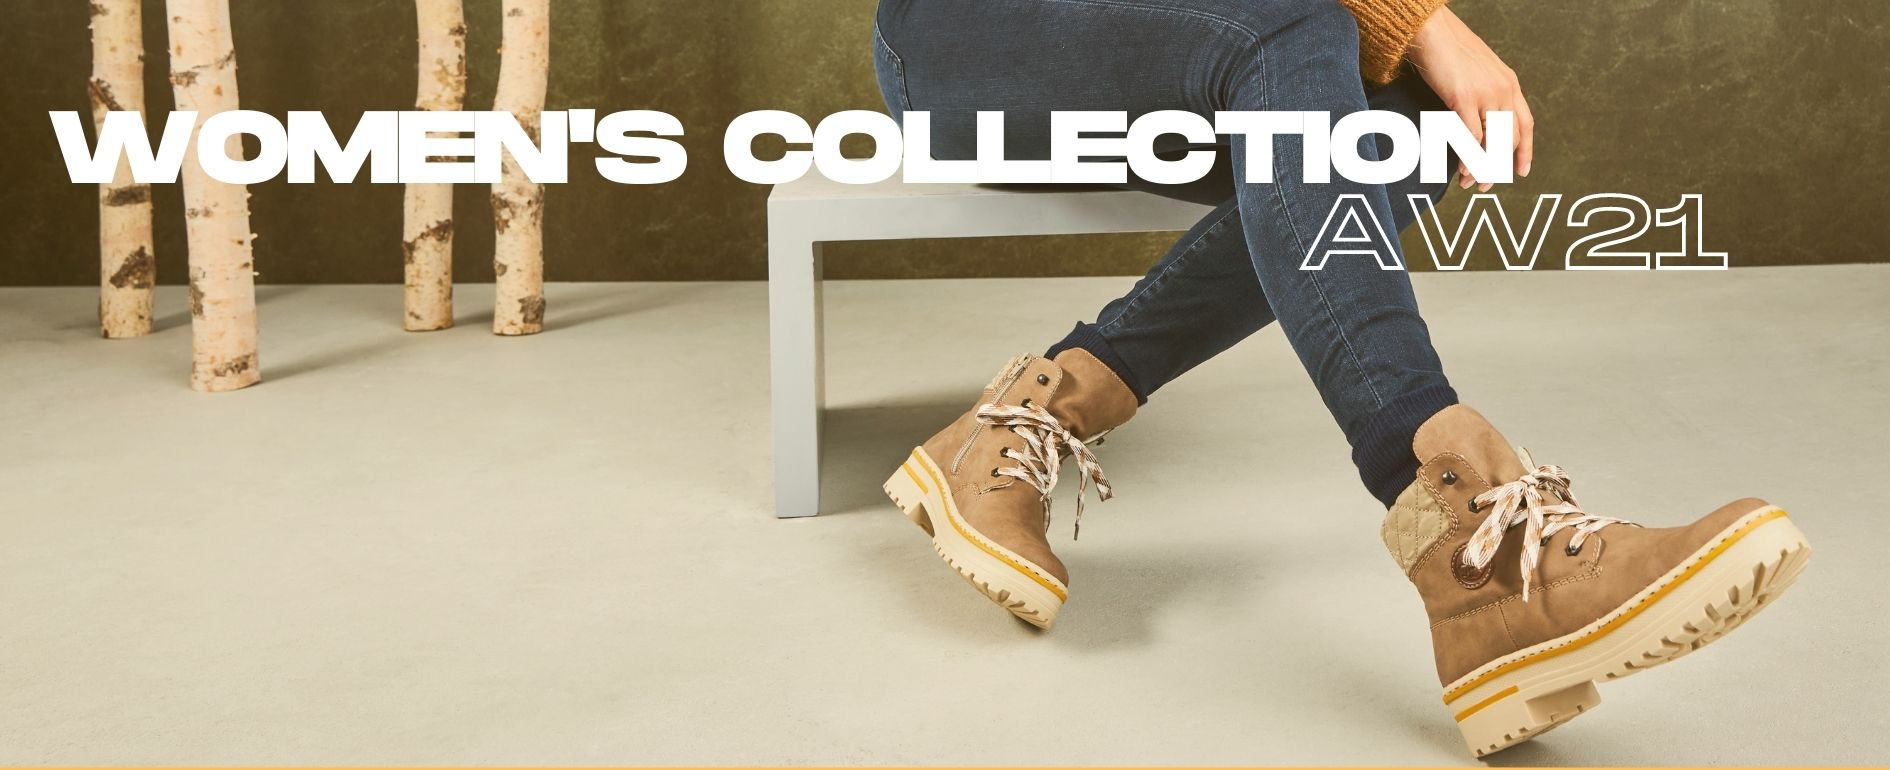 Women's footwear collection AW21 from PurpleTag.ie